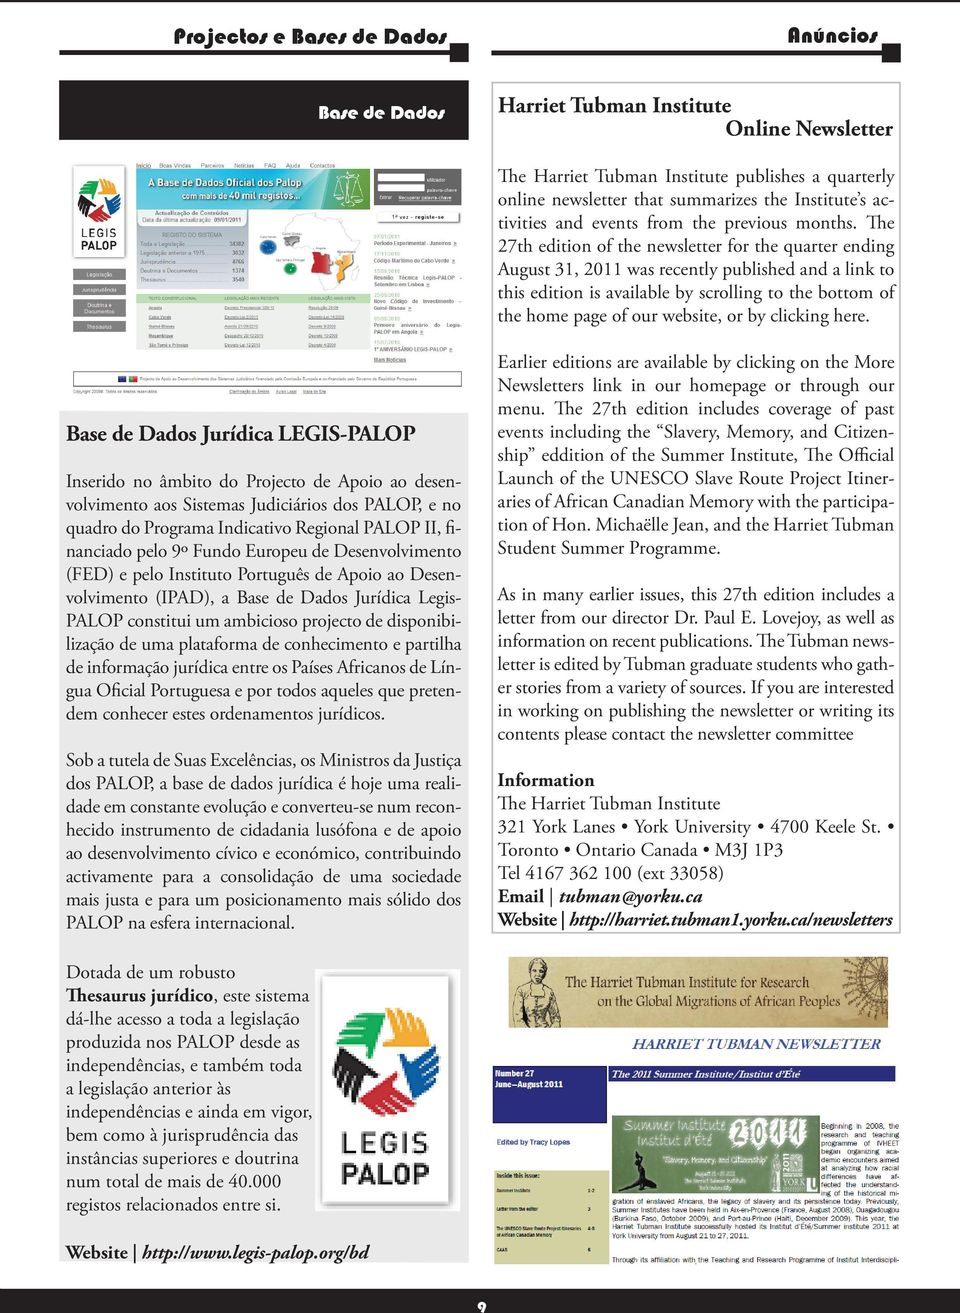 The 27th edition of the newsletter for the quarter ending August 31, 2011 was recently published and a link to this edition is available by scrolling to the bottom of the home page of our website, or